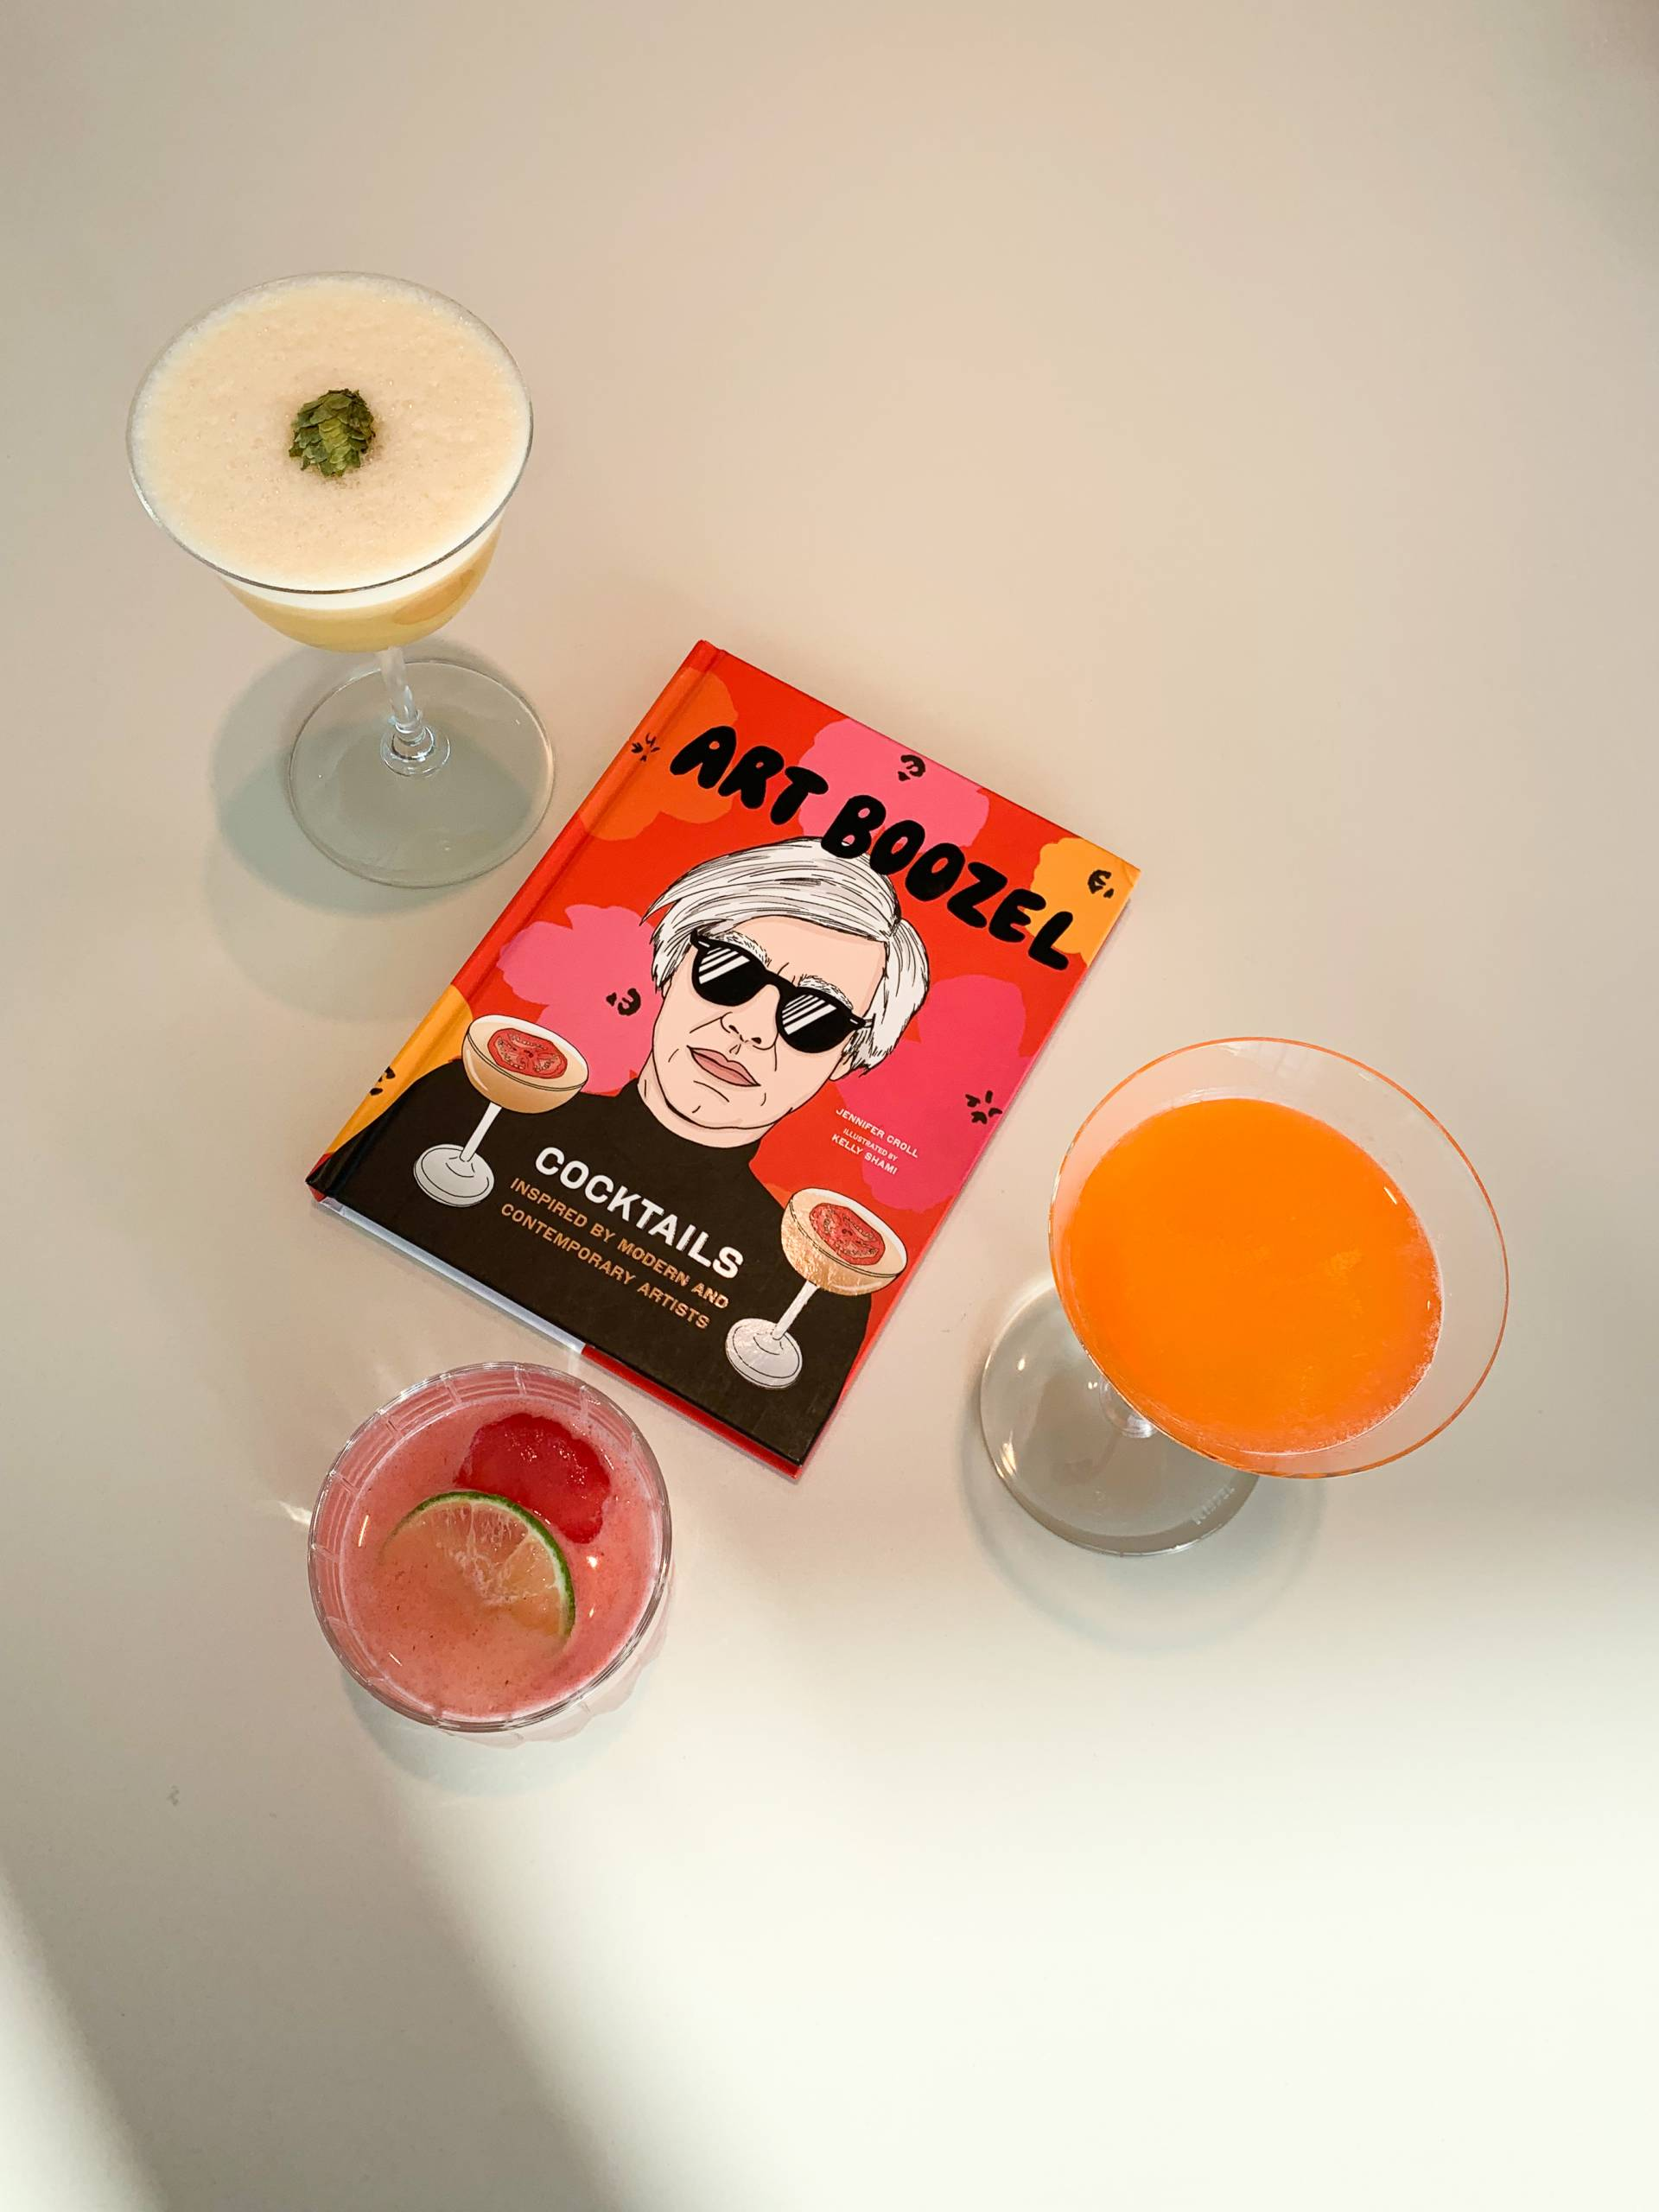 colorful cocktails with the book they are from called Art Boozel